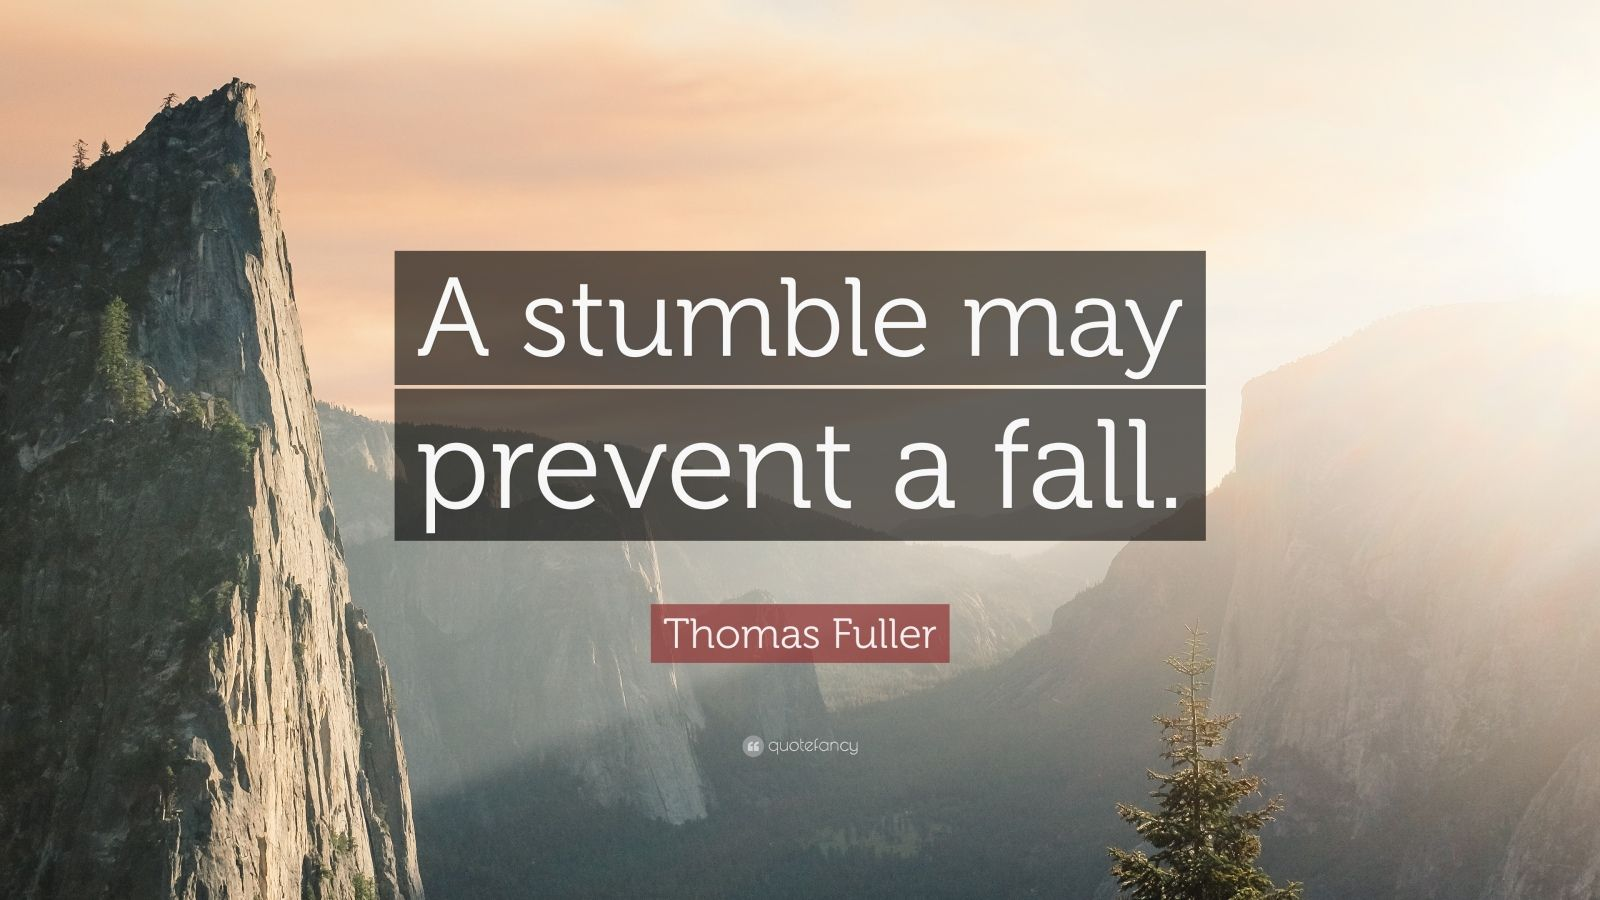 a stumble may prevent a fall A stumble may prevent a fall more english proverbs: he who says what he likes will hear what he does not like english never love with all your heart, it only ends.